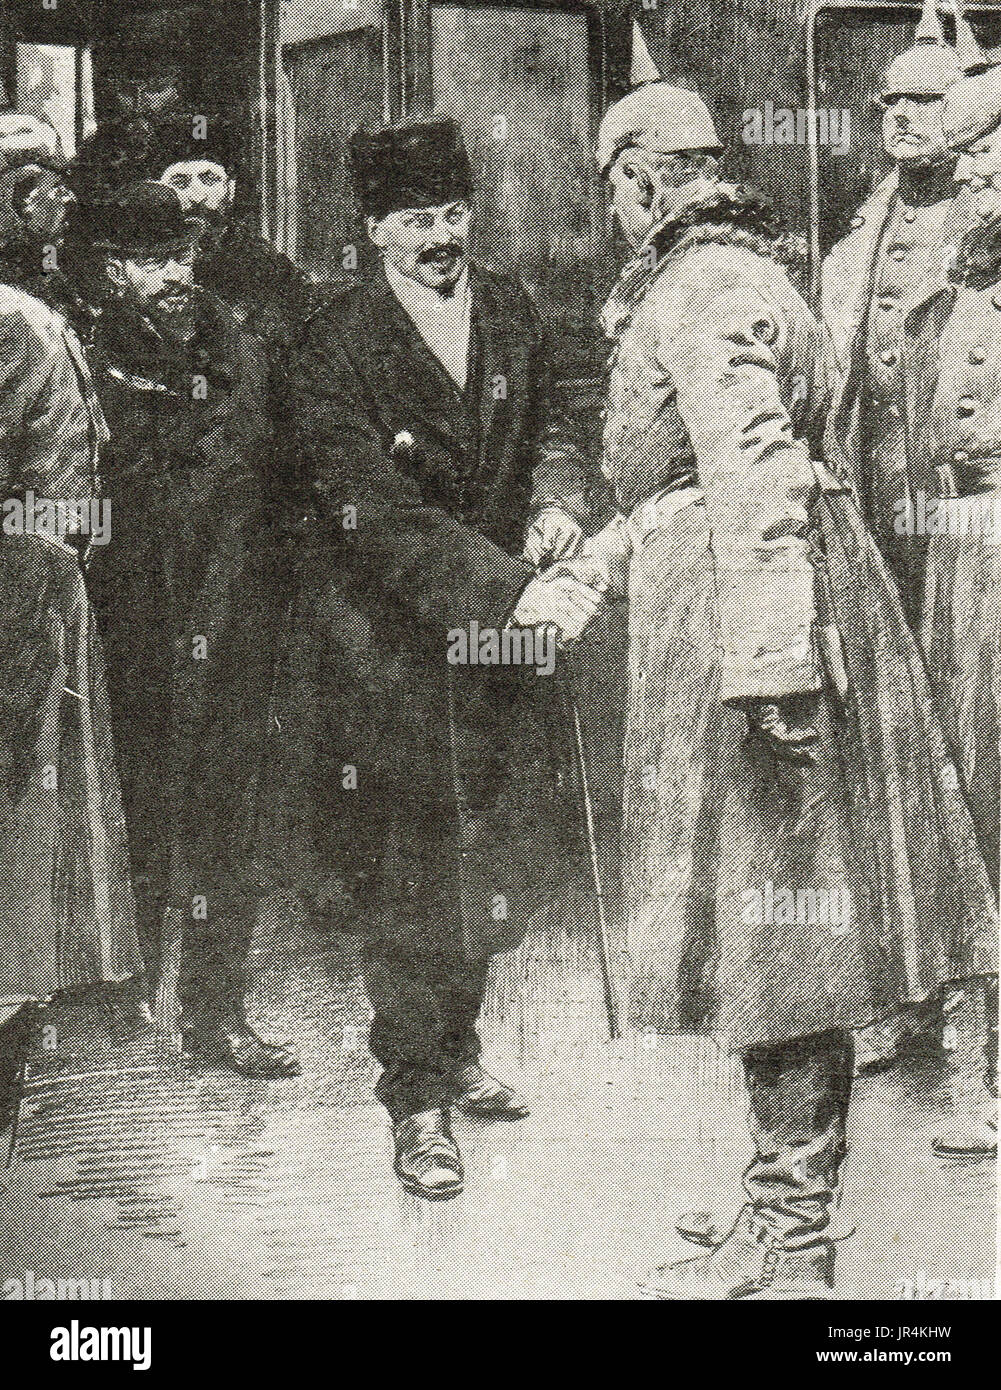 Arrival of Trotsky at Brest Litovsk, January 1918 - Stock Image